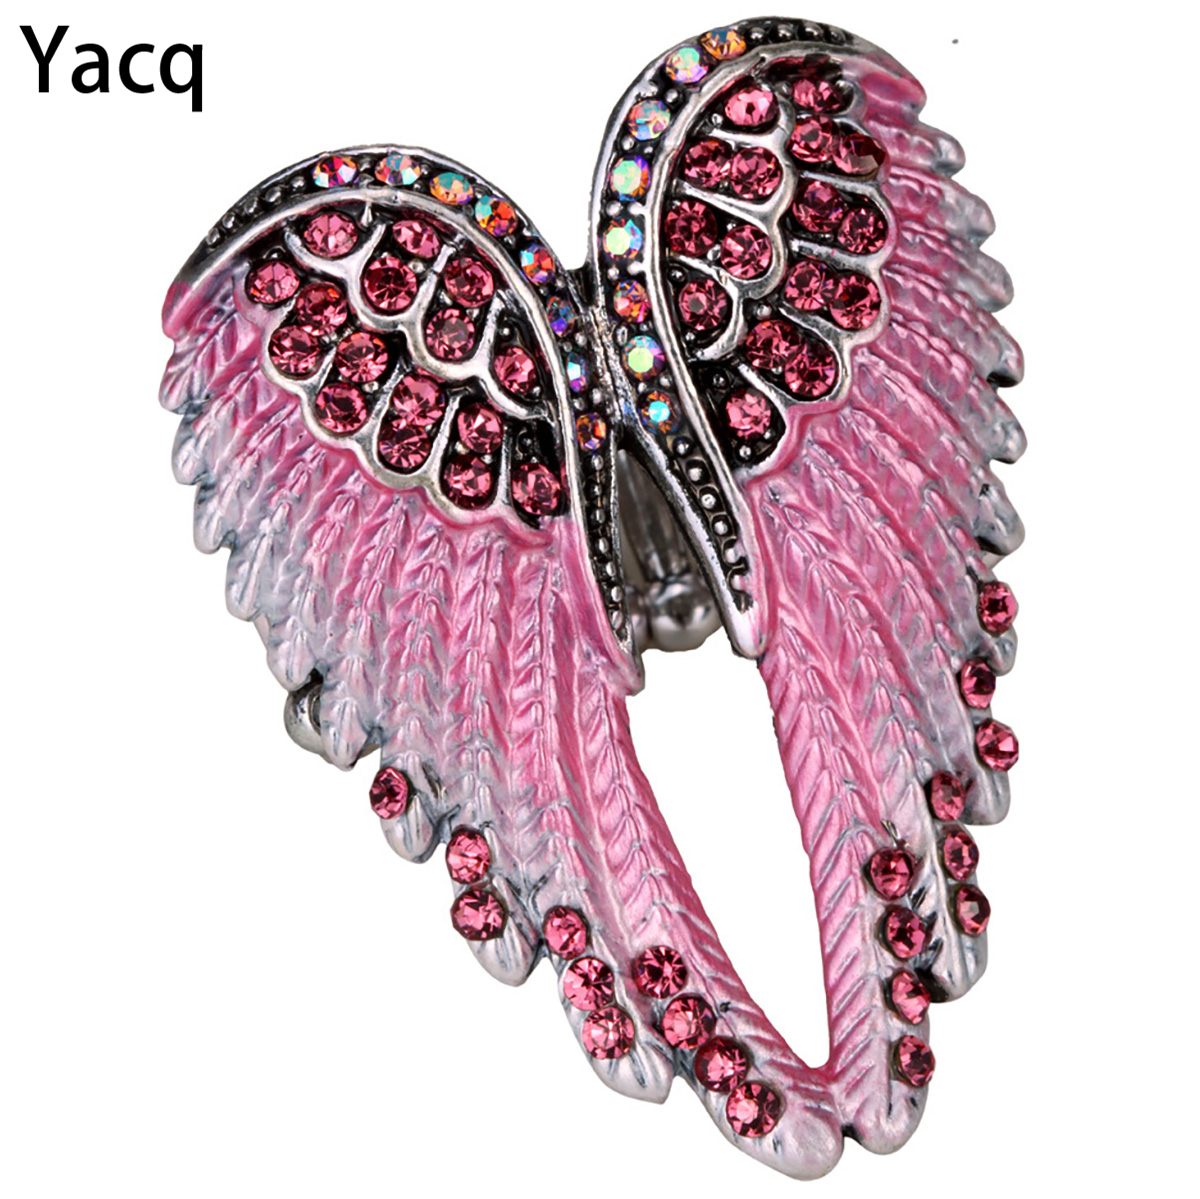 YACQ Angel Wings Stretch Ring skjerf Clasp Spenne Damer Biker Bling Crystal Crystal Smykker Gaver Gullsølvbelagt Dropshipping